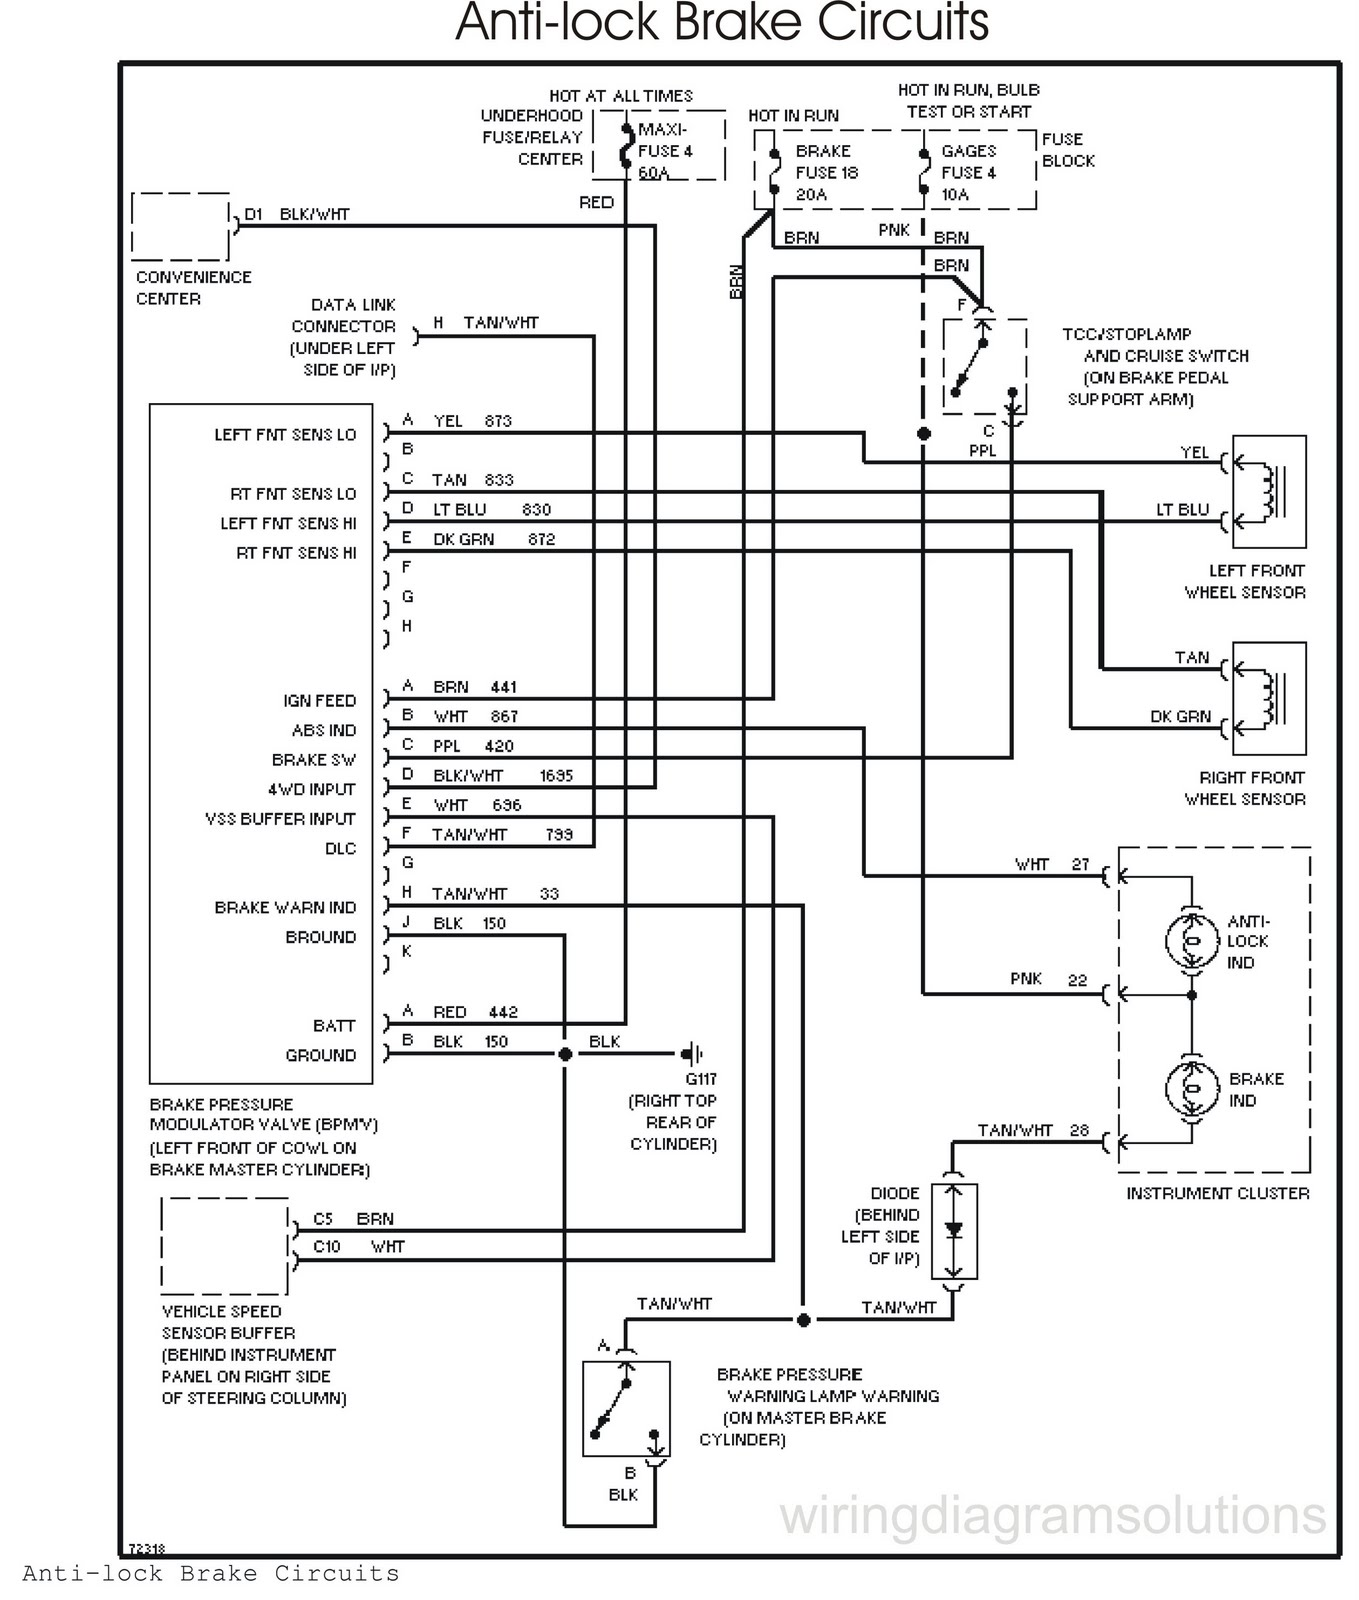 the 1995 chevrolet tahoe wiring schematic anti lock brake